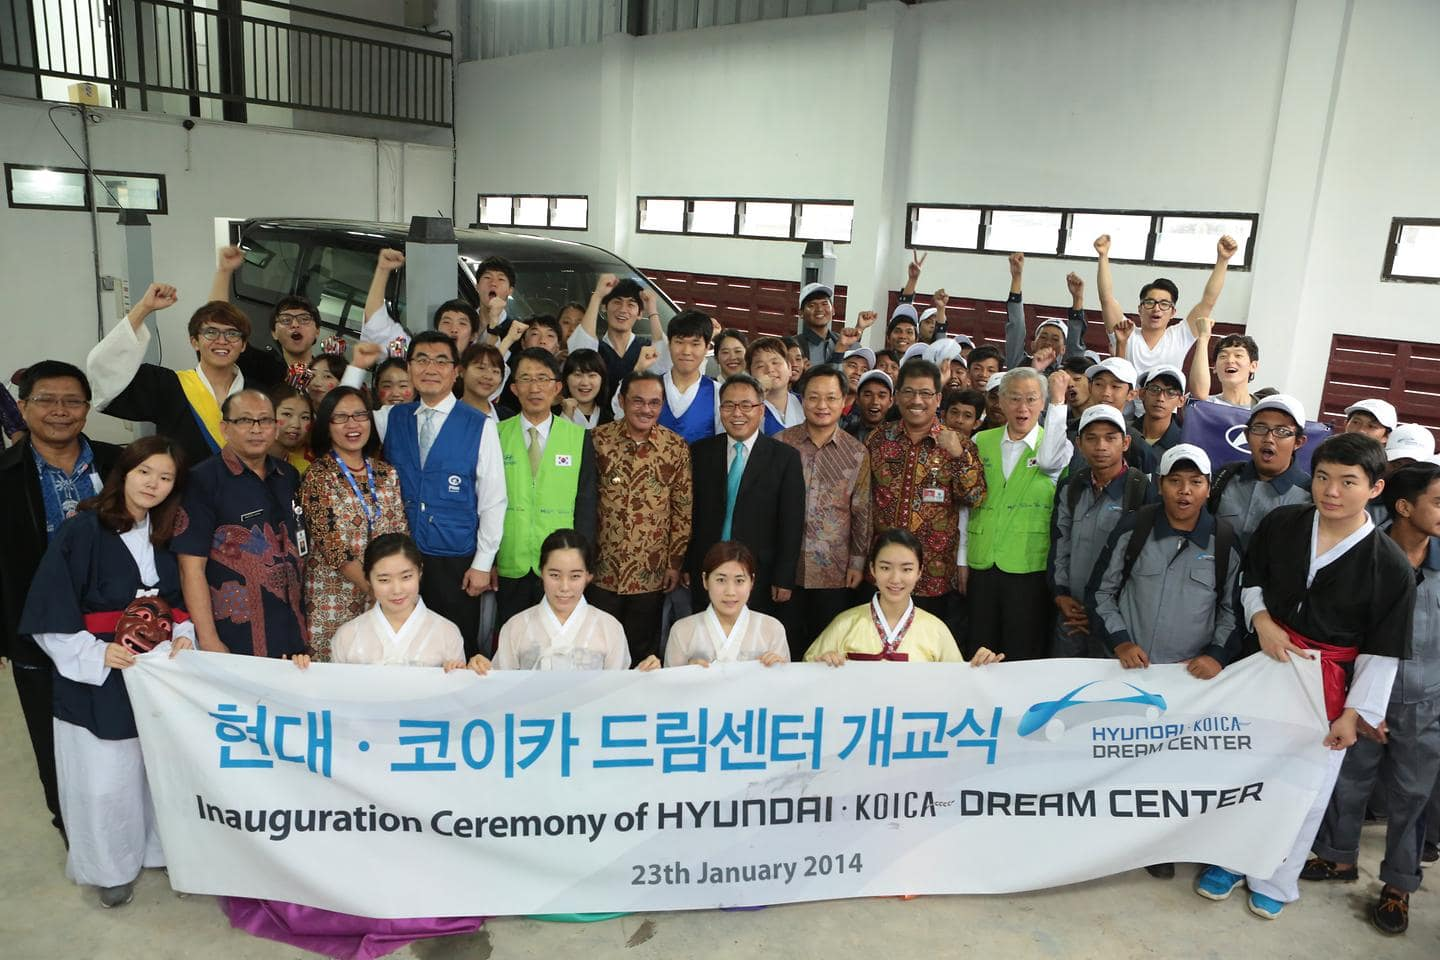 Inauguration Ceremony of HYUNDAI KOICA Dream Center in Indonesia 2